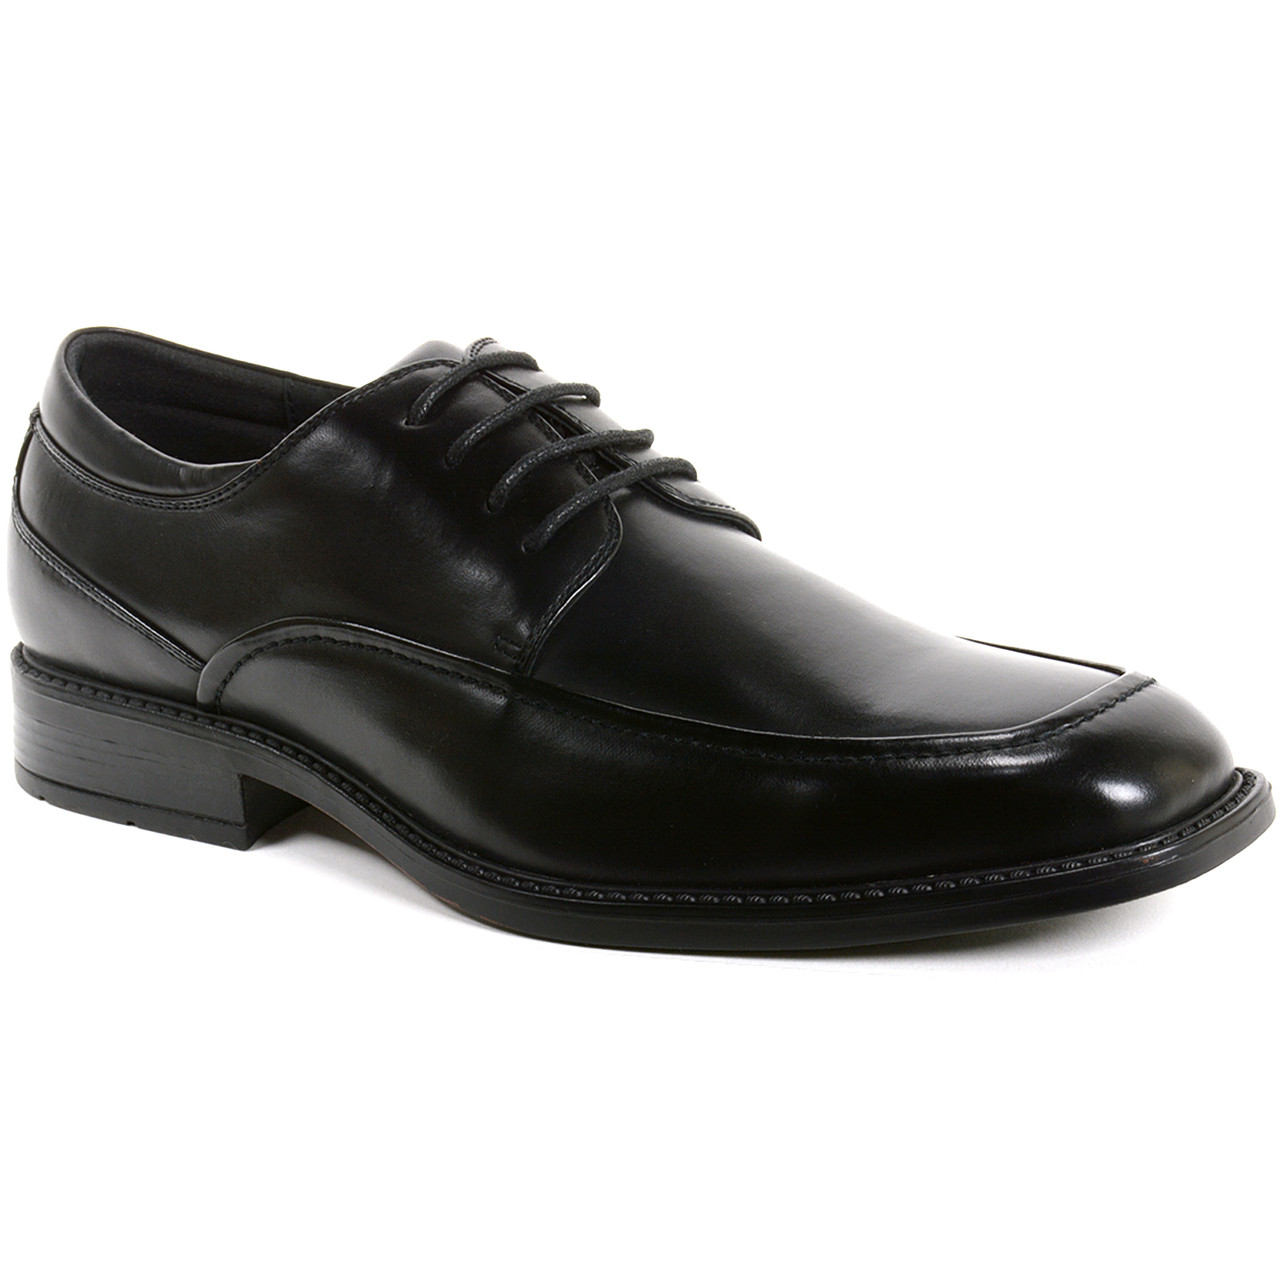 9365258104 ... Mens Oxfords Suede Lined Classic Lace Up Derby Dress Shoes ·  https://d3d71ba2asa5oz.cloudfront.net/53000711/images/claro-